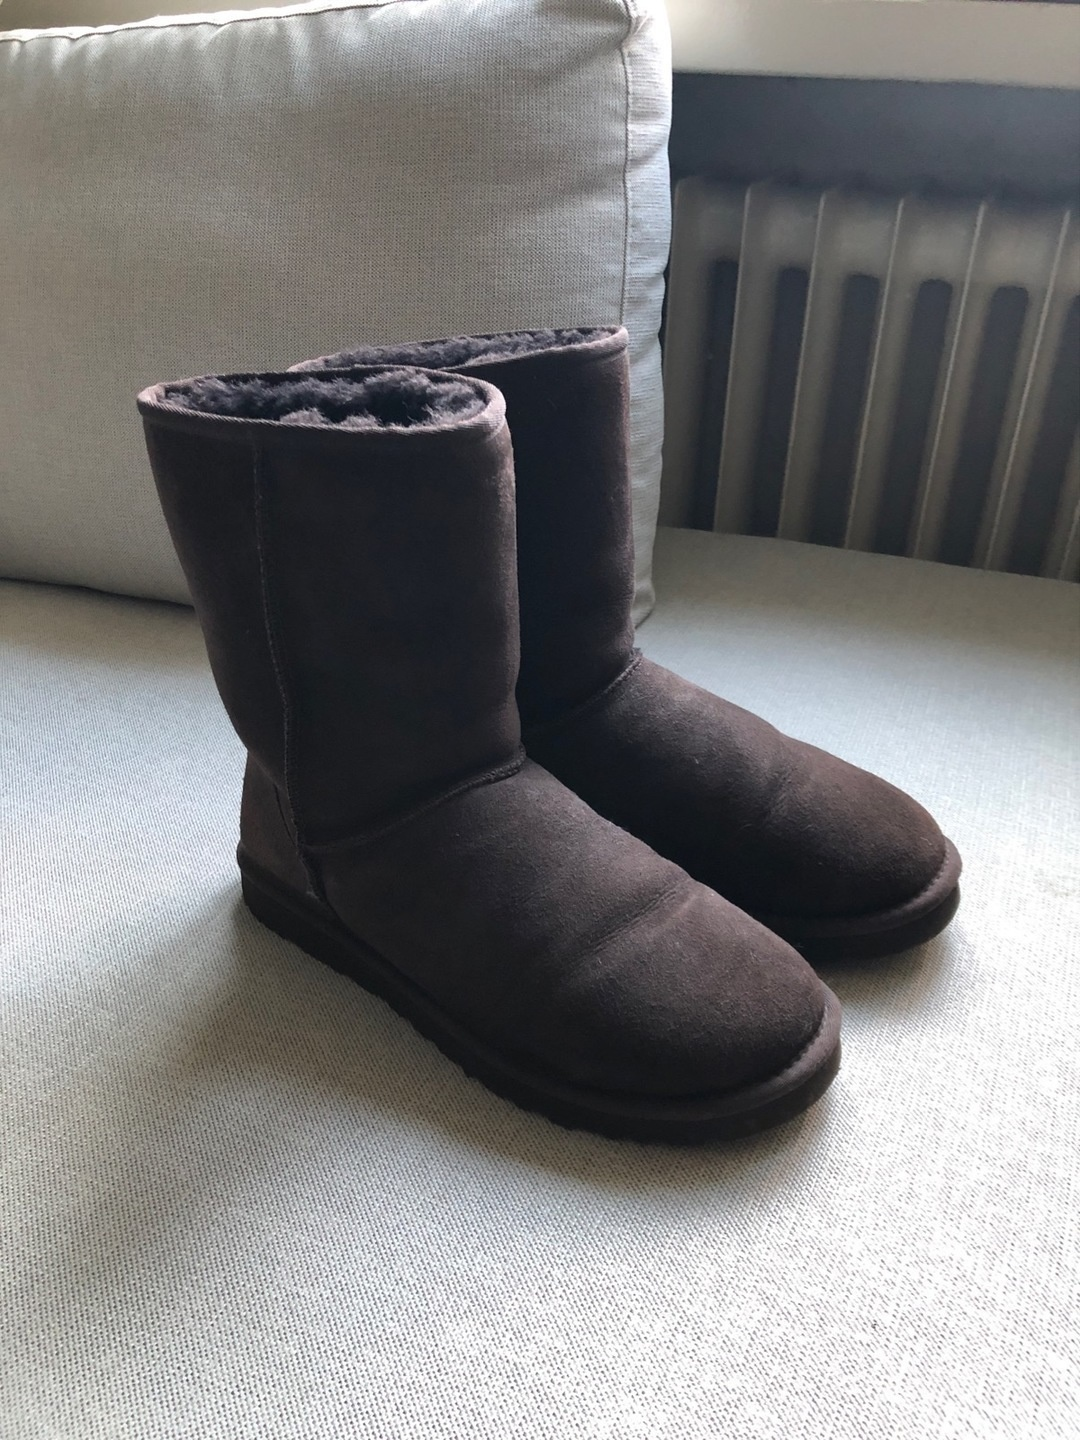 Damers vinter & regn - UGG photo 4